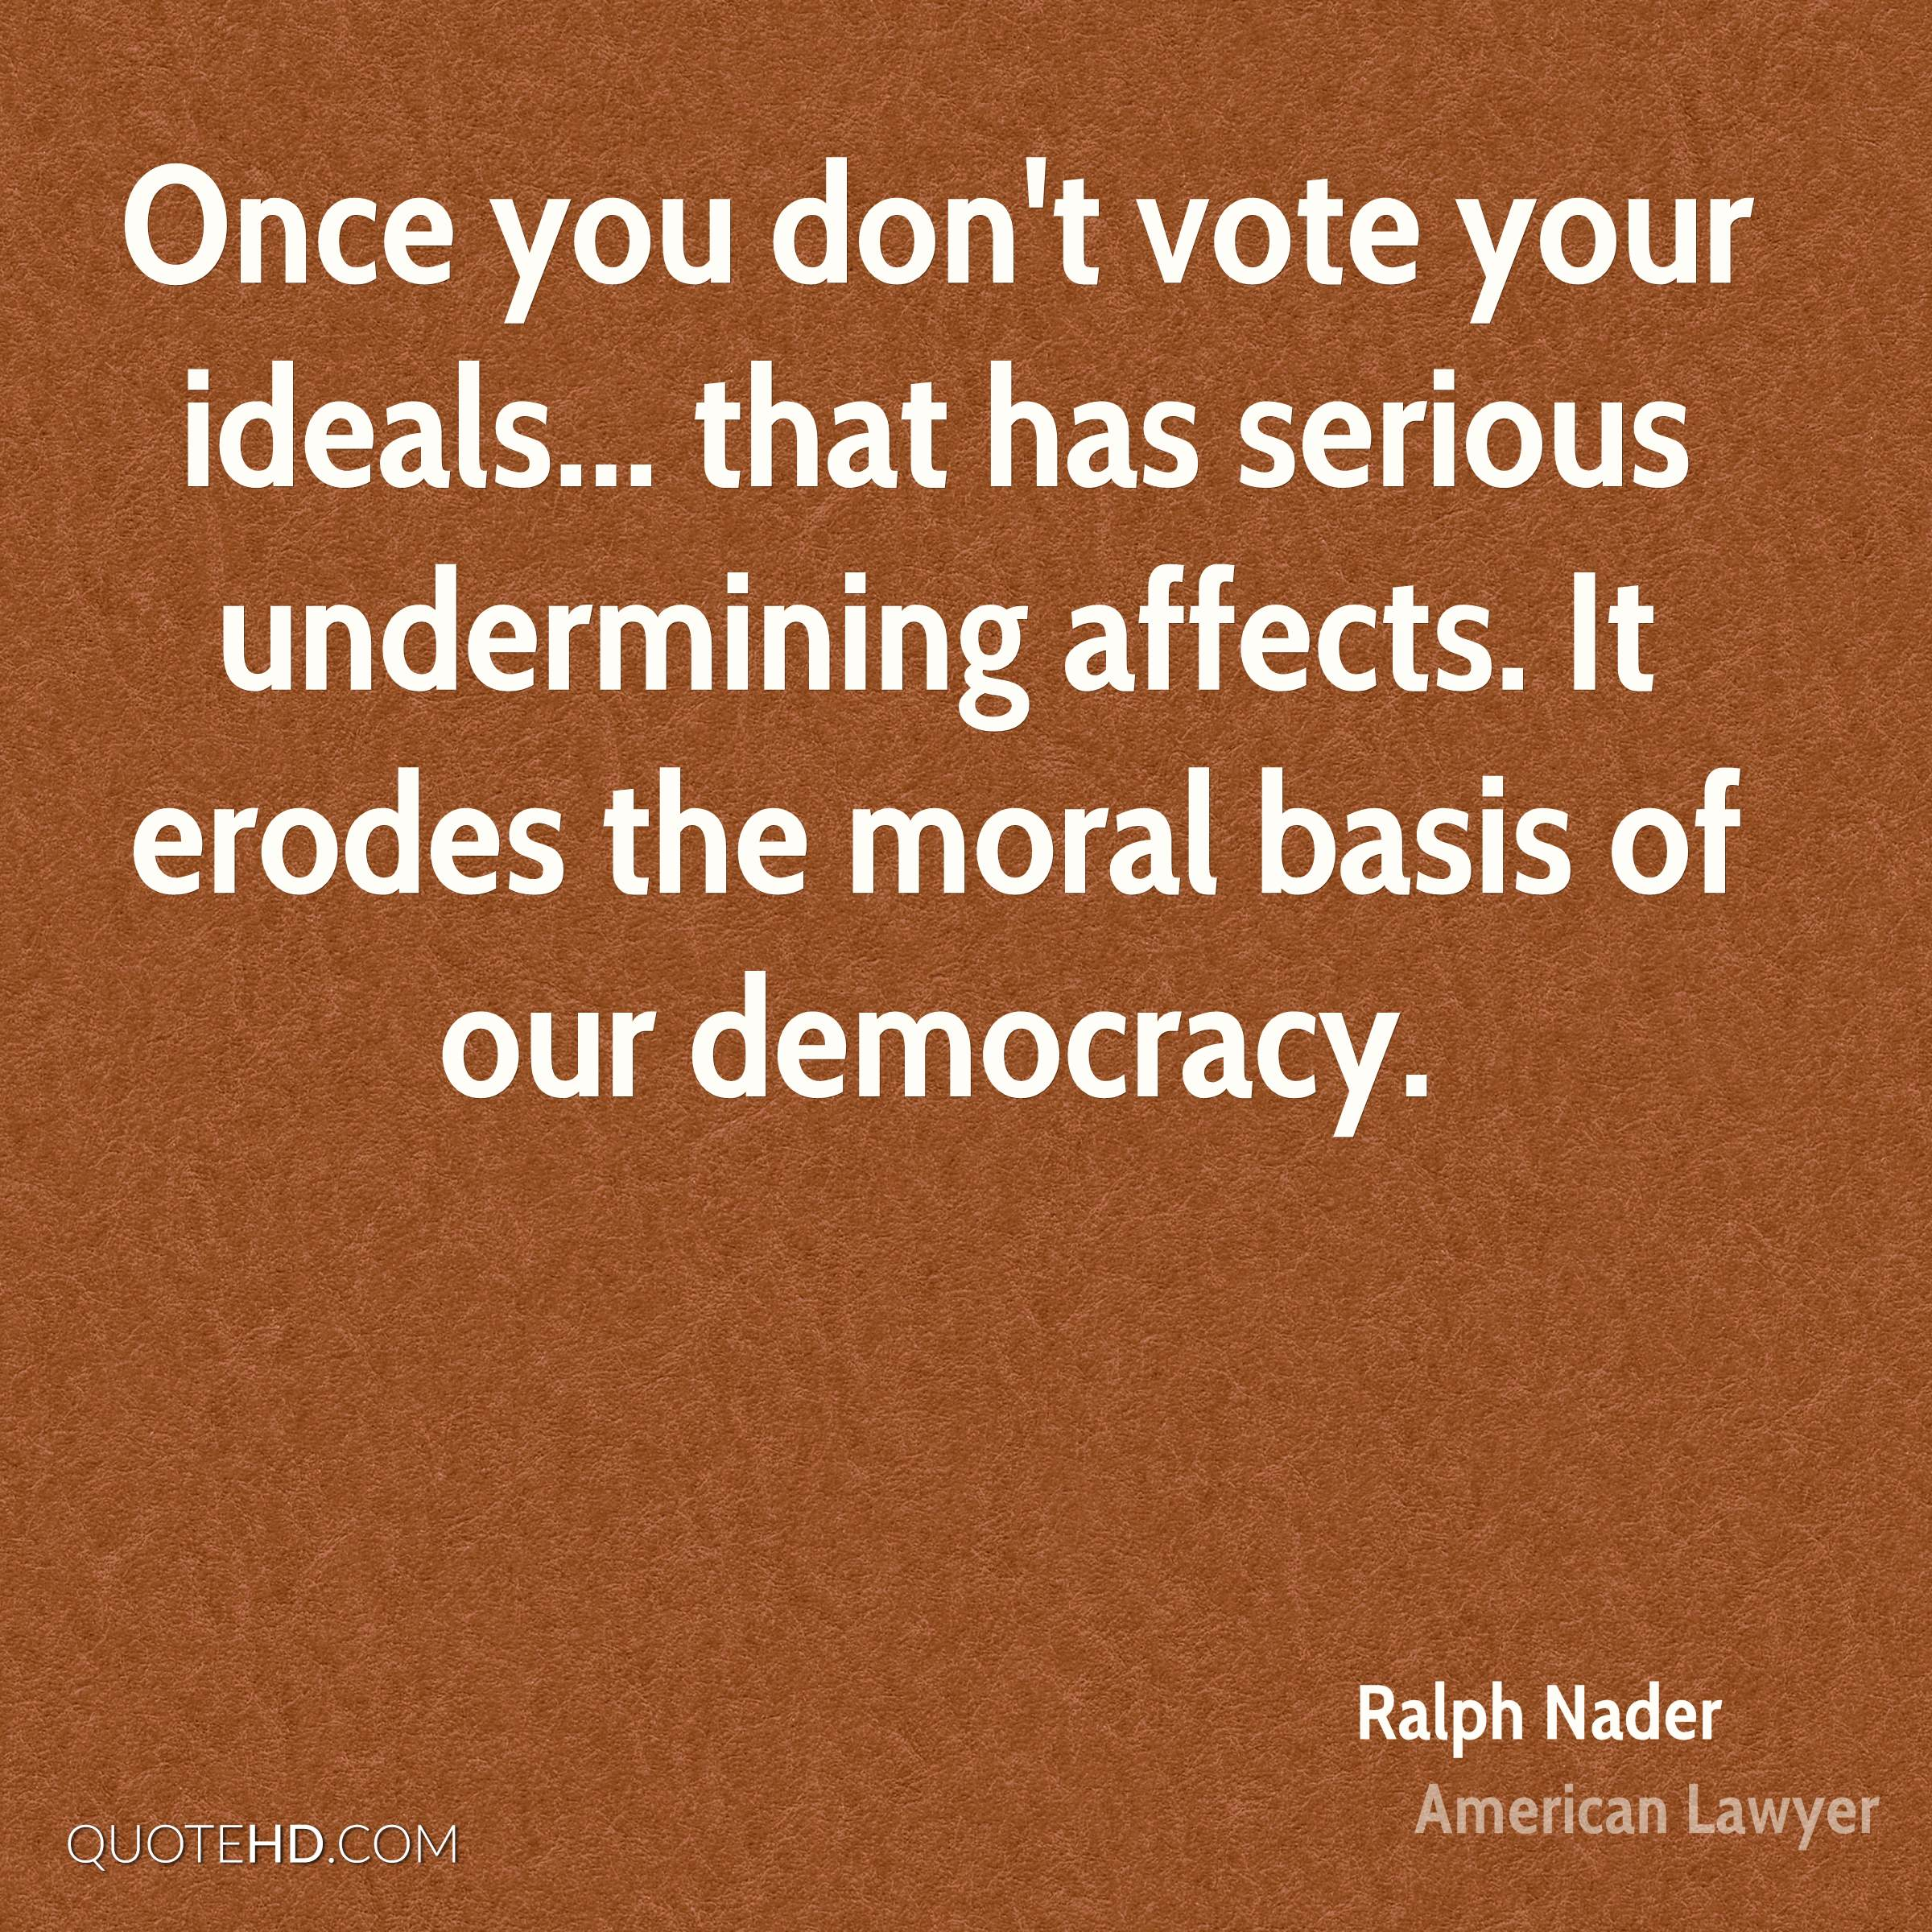 Once you don't vote your ideals... that has serious undermining affects. It erodes the moral basis of our democracy.